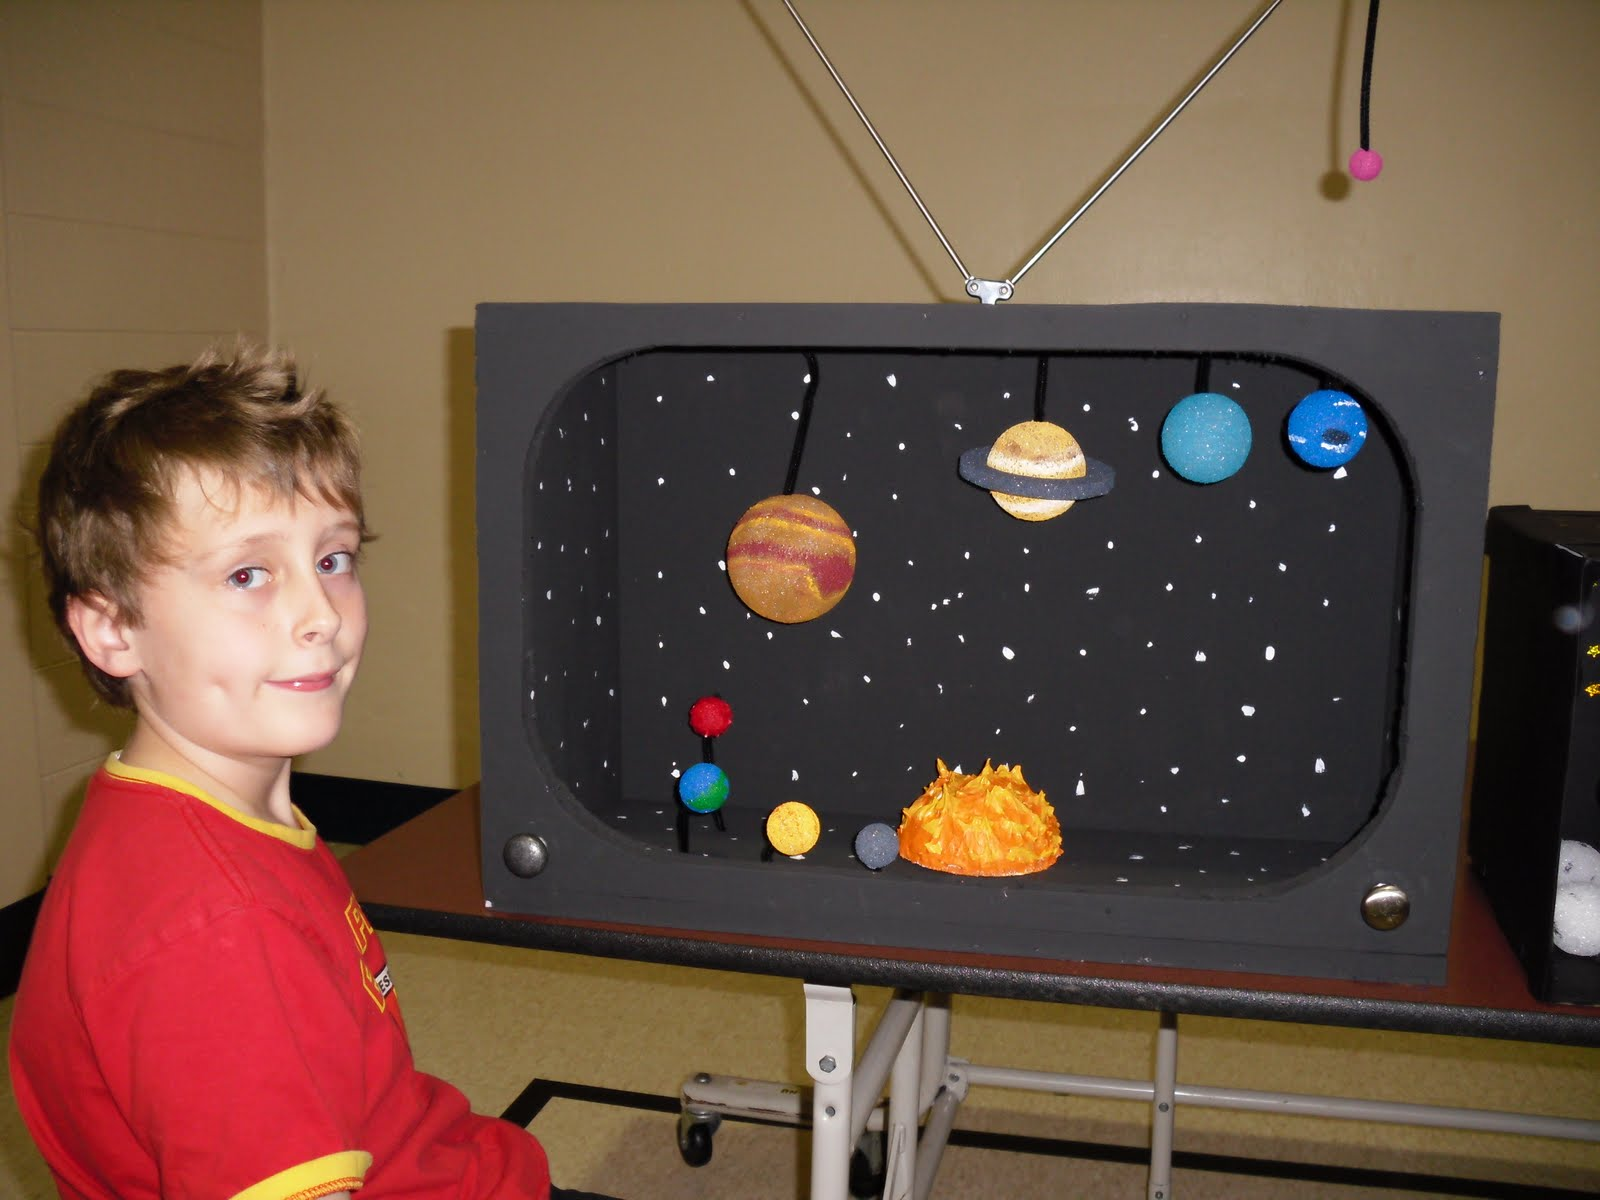 solar system project ideas - photo #6